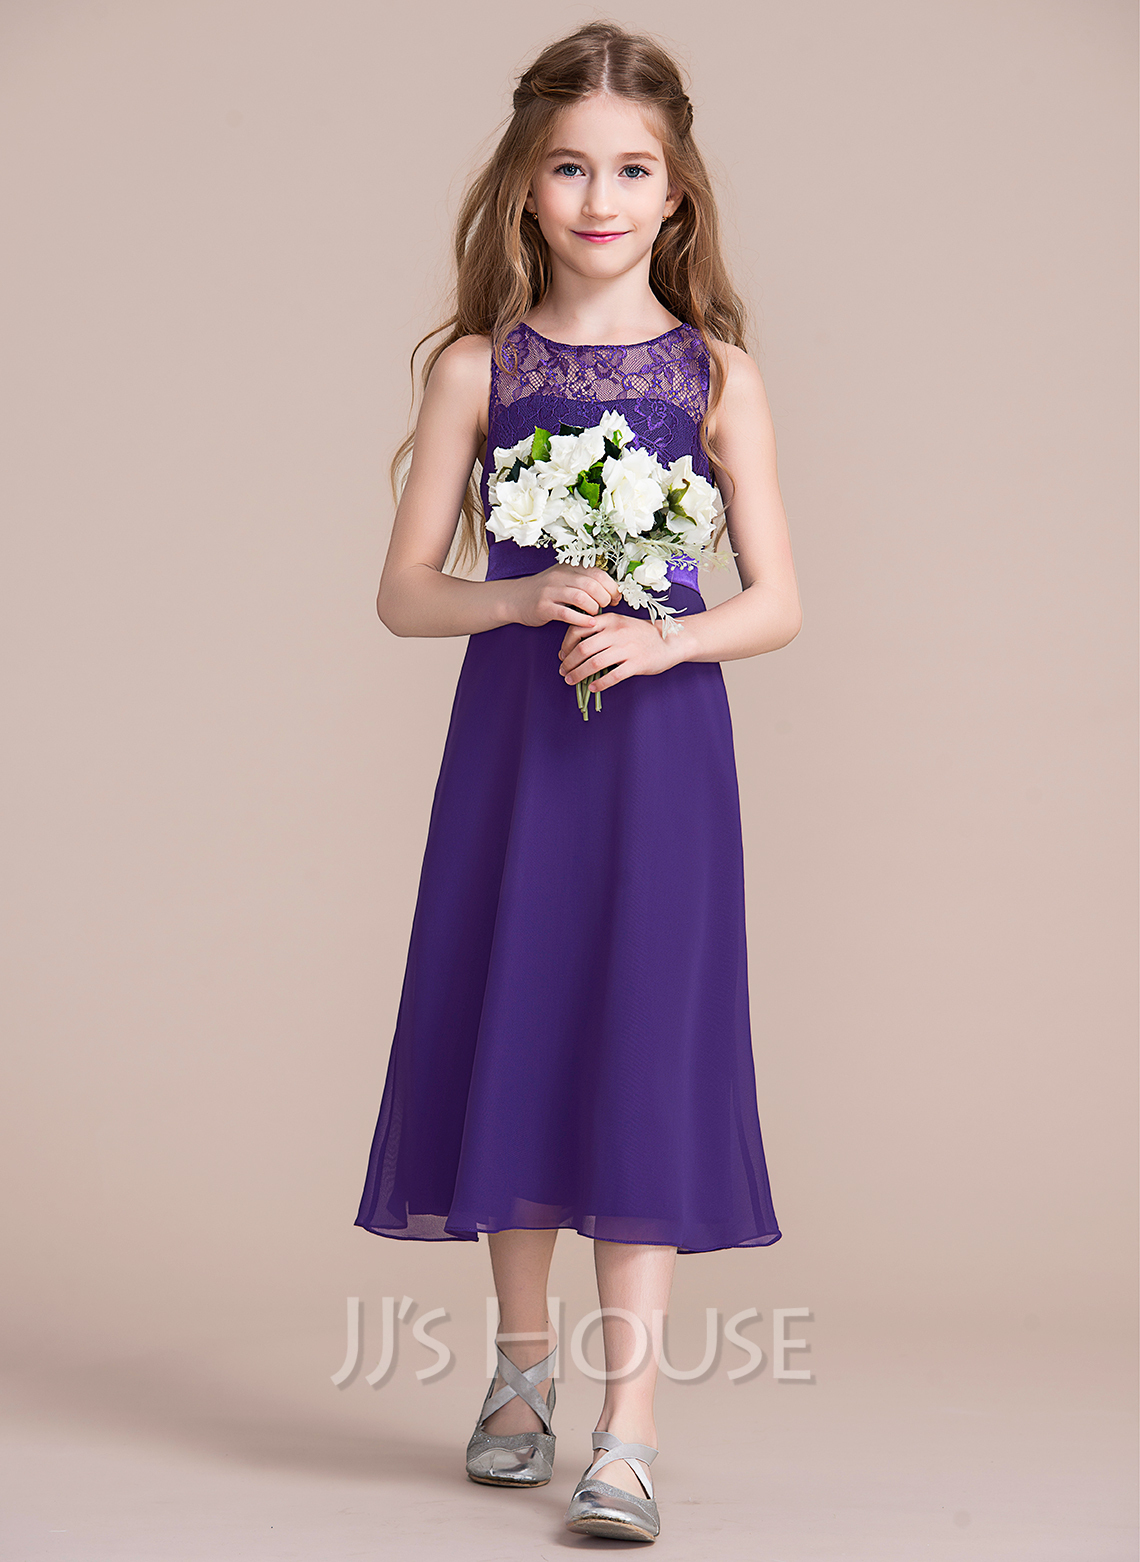 A lineprincess scoop neck tea length chiffon junior bridesmaid a lineprincess scoop neck tea length chiffon junior bridesmaid dress loading zoom ombrellifo Choice Image